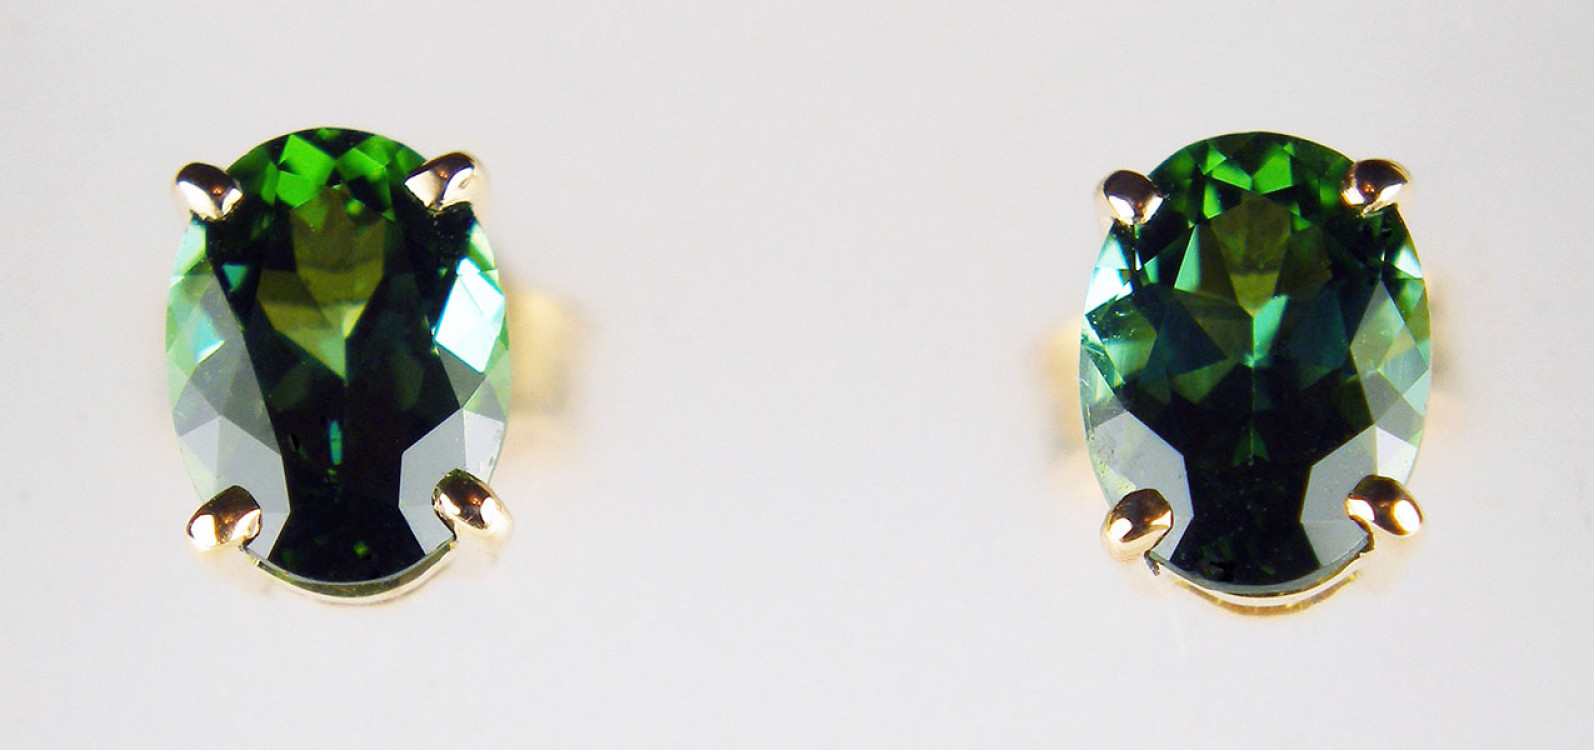 75a0cc0ae Oval sea green tourmaline earstuds in 18ct rose gold - 1.67ct pair of oval  sea